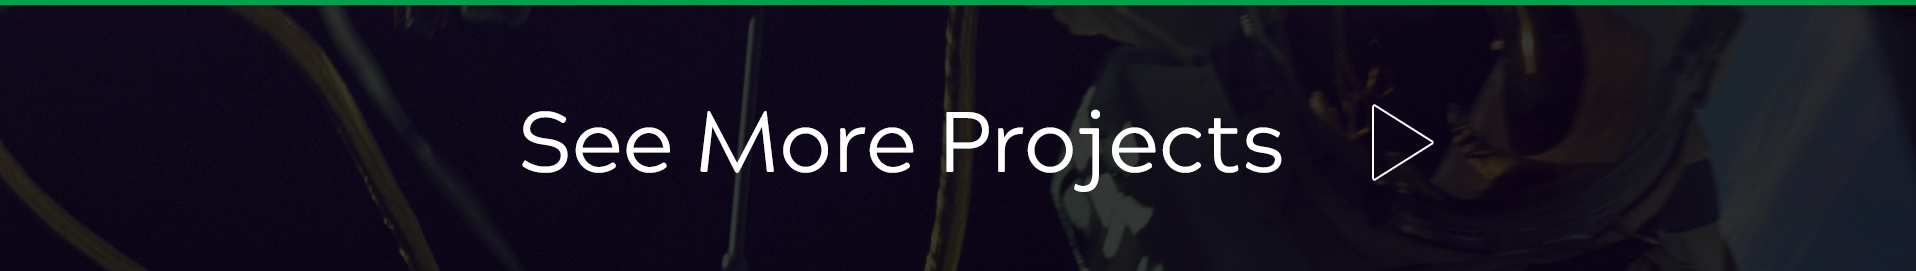 See_More_Projects